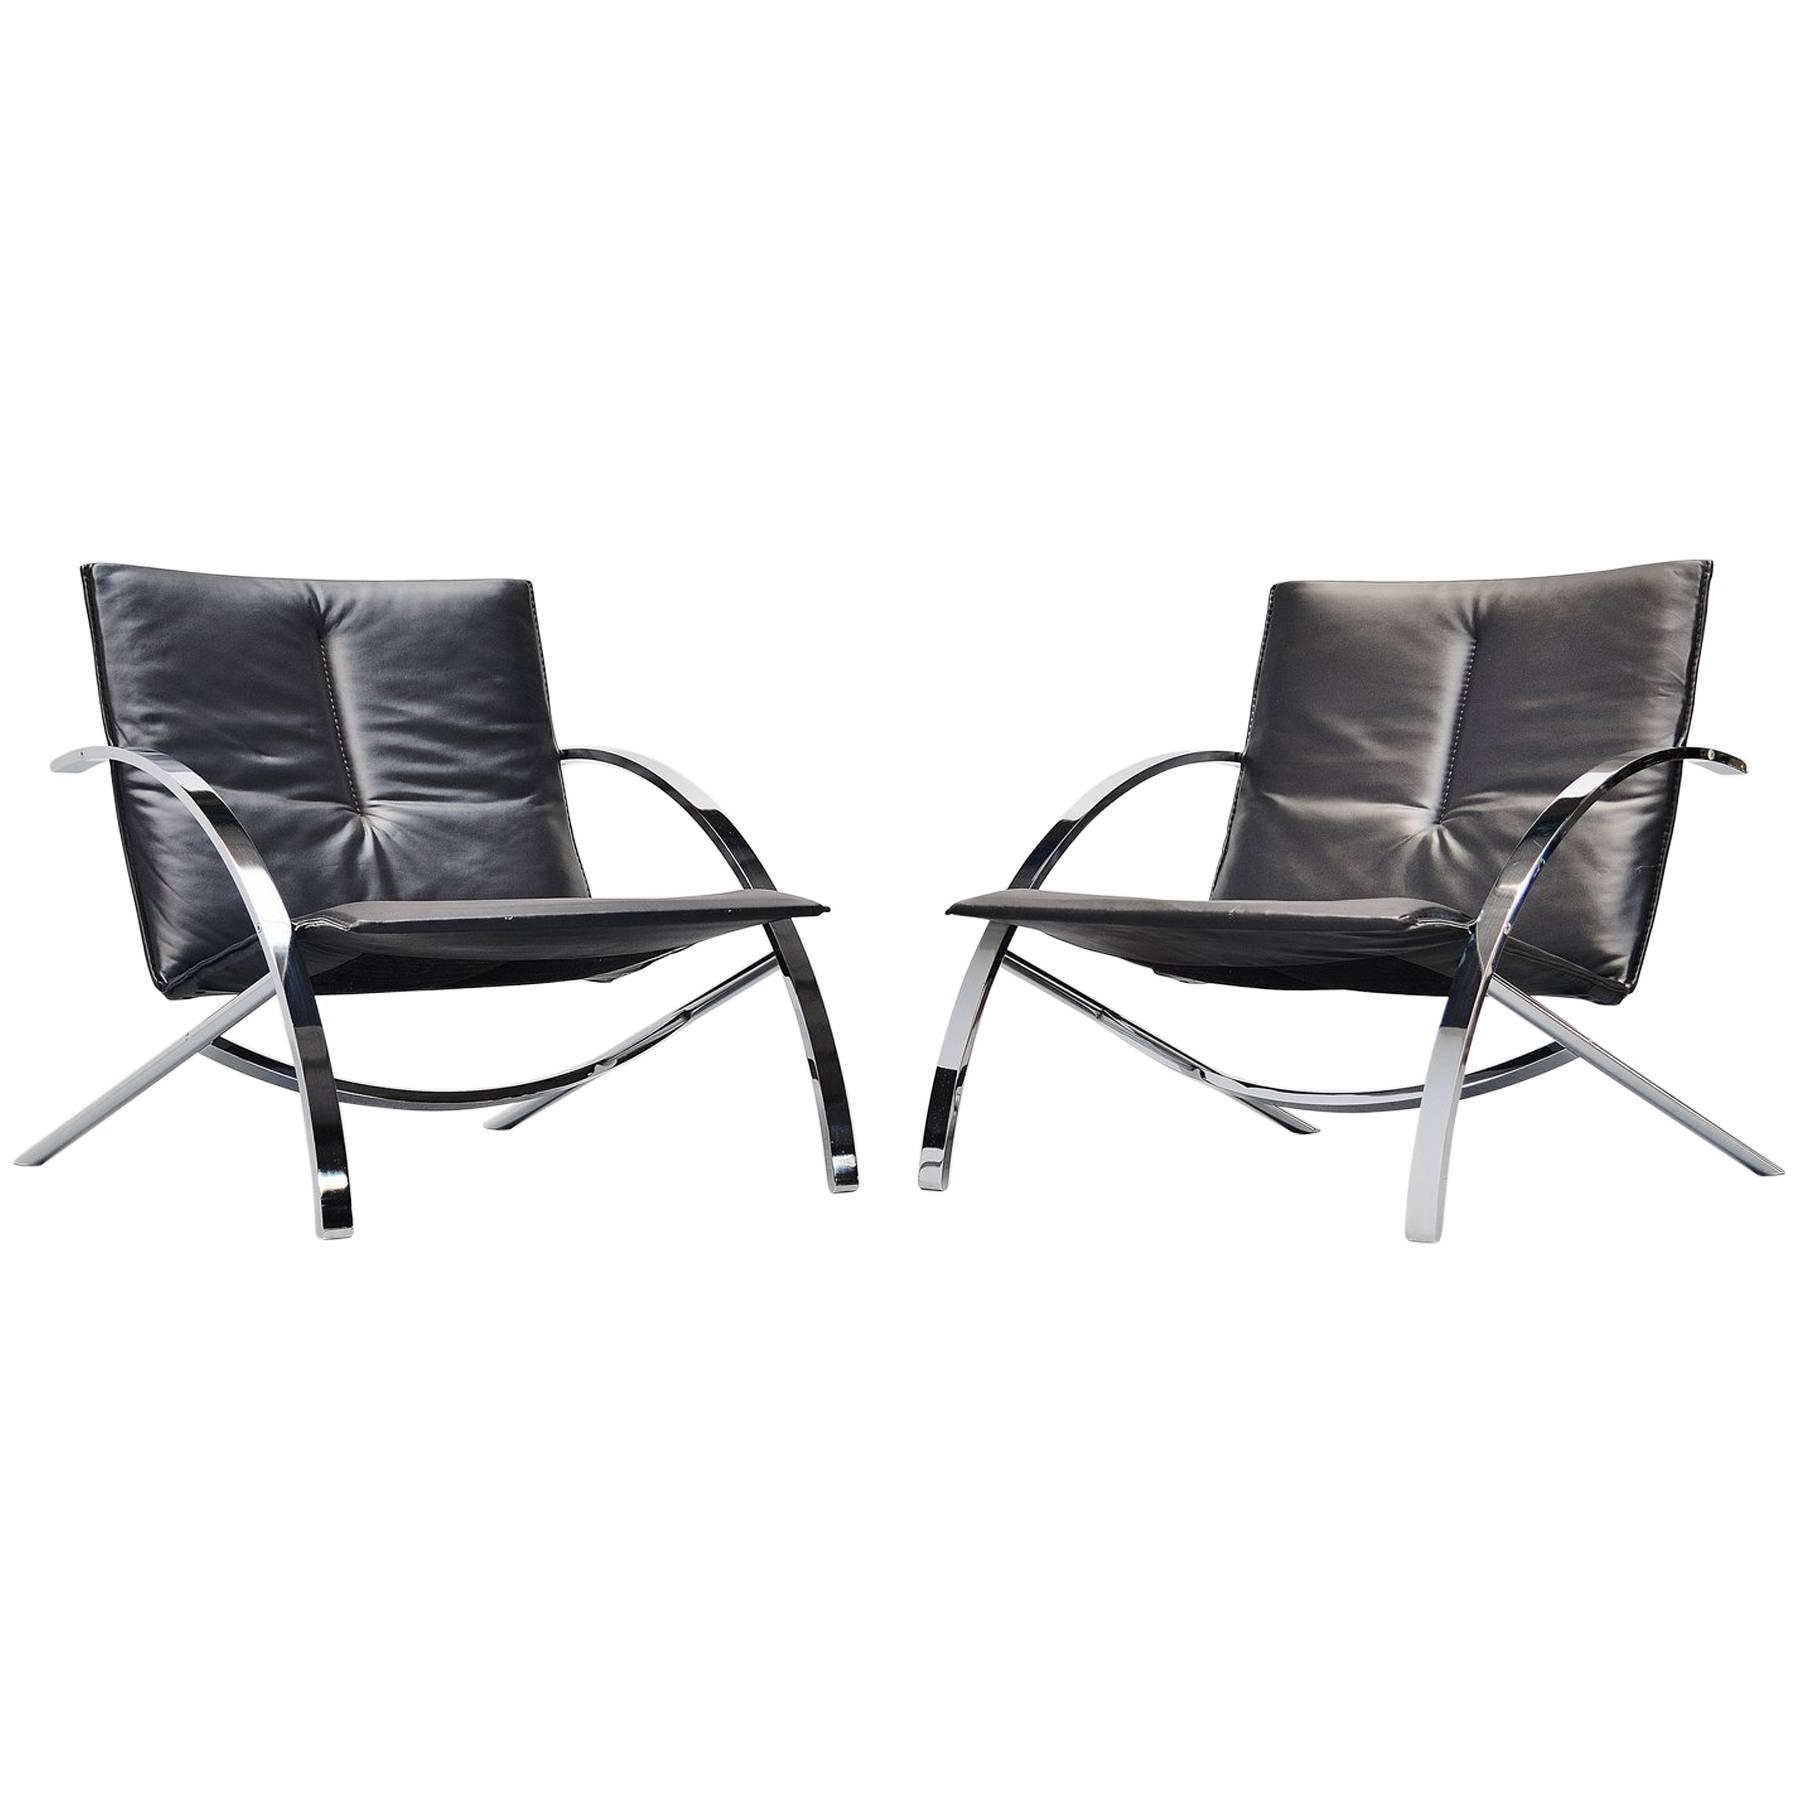 Widely Used Franco Iii Fabric Swivel Rocker Recliners With Regard To Paul Tuttle Furniture – 29 For Sale At 1Stdibs (View 20 of 20)